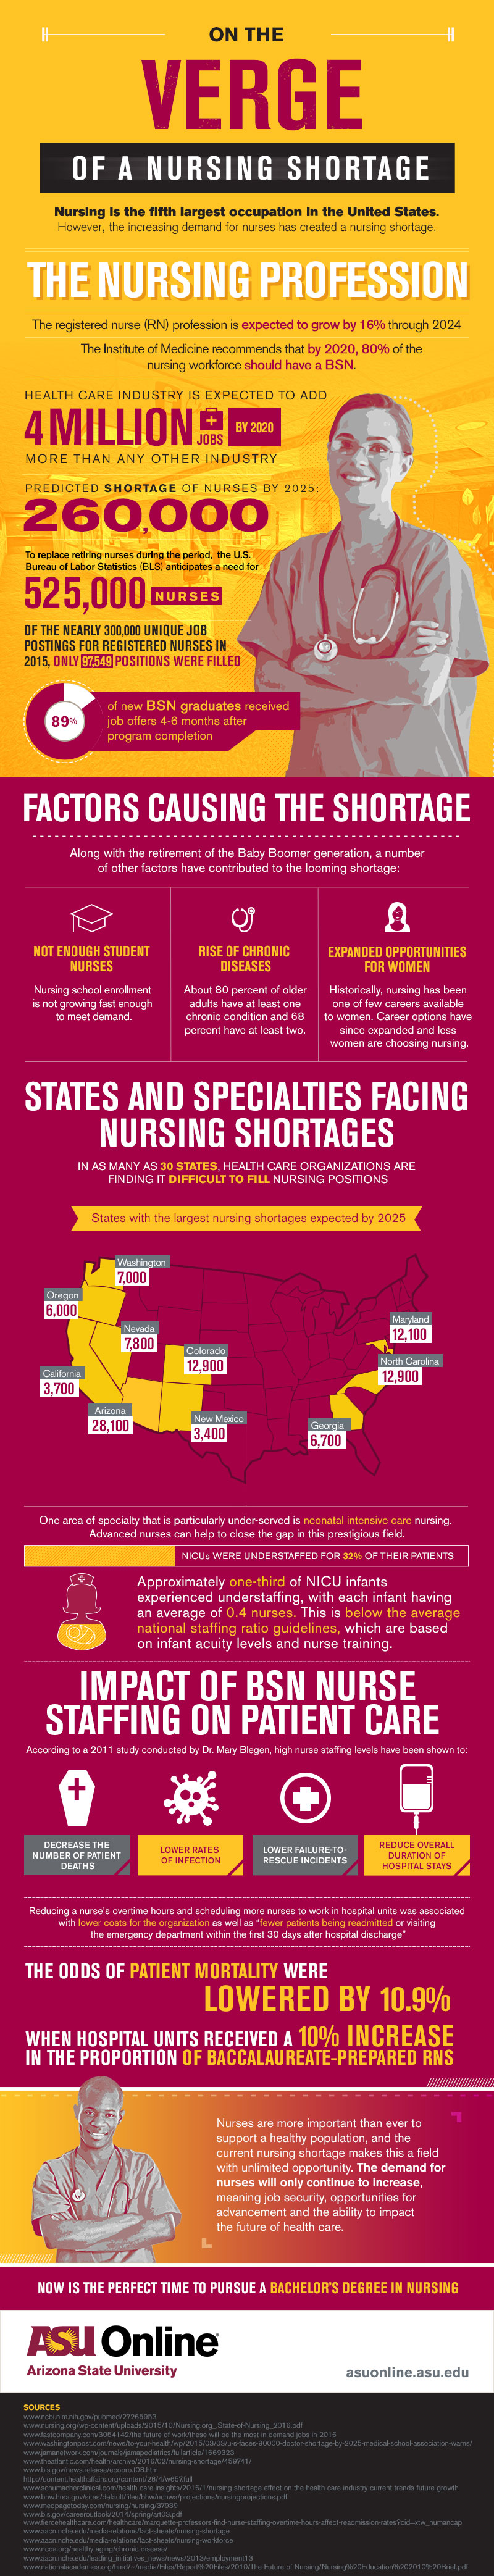 Brink of a Nursing Shortage [Infographic]